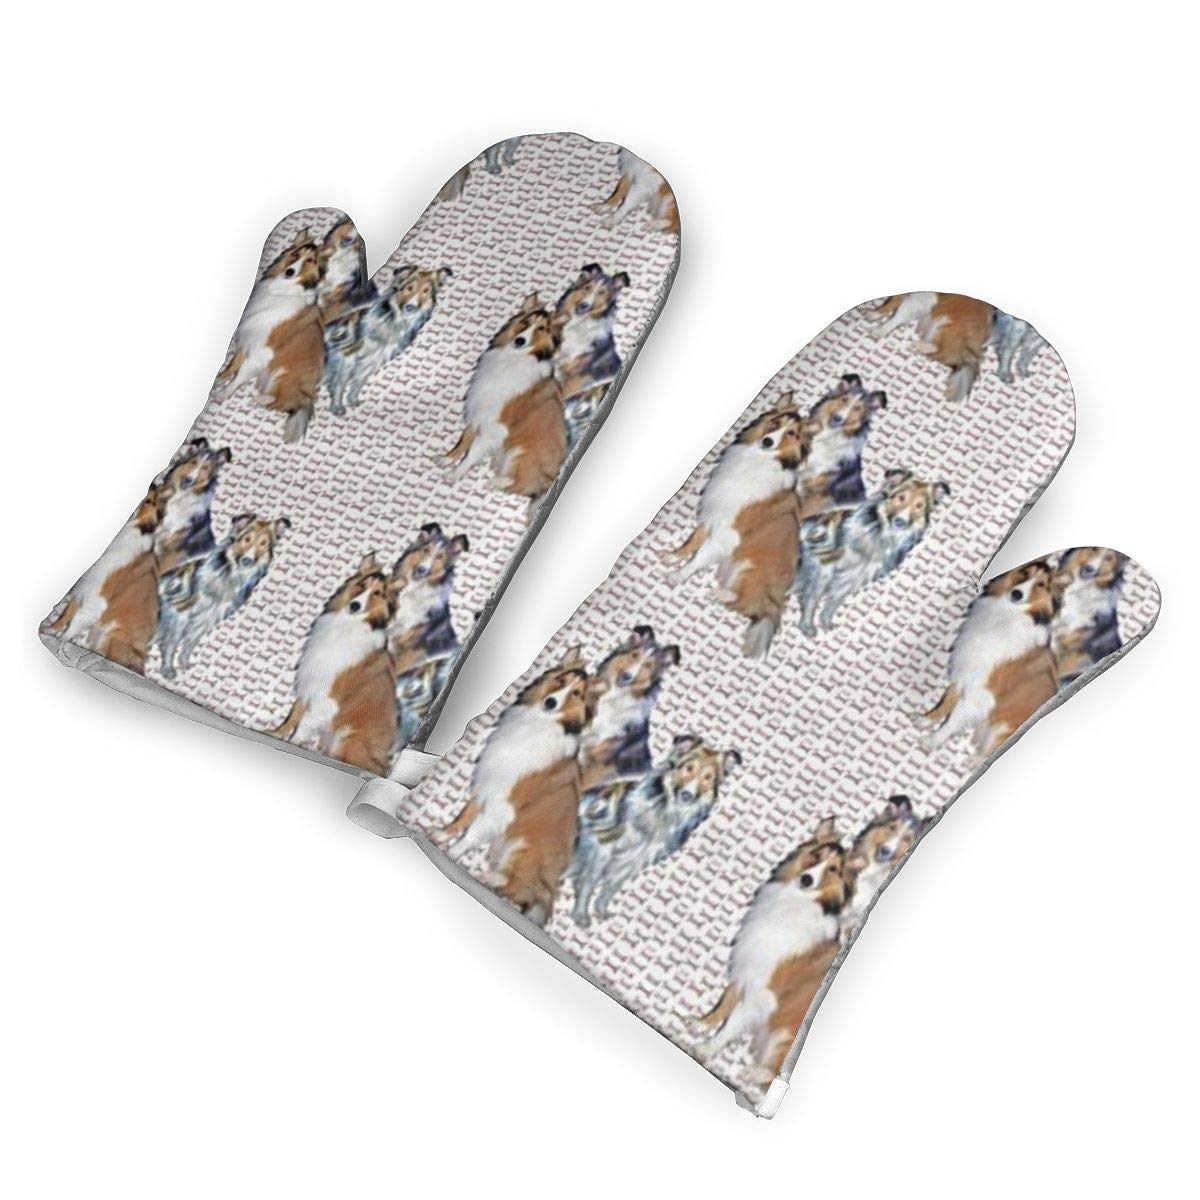 WWOC Shelties and Bones Oven Mitts, Premium Heat Resistant Kitchen& Polyester Quilted Oversized Mittens, 1 Pair